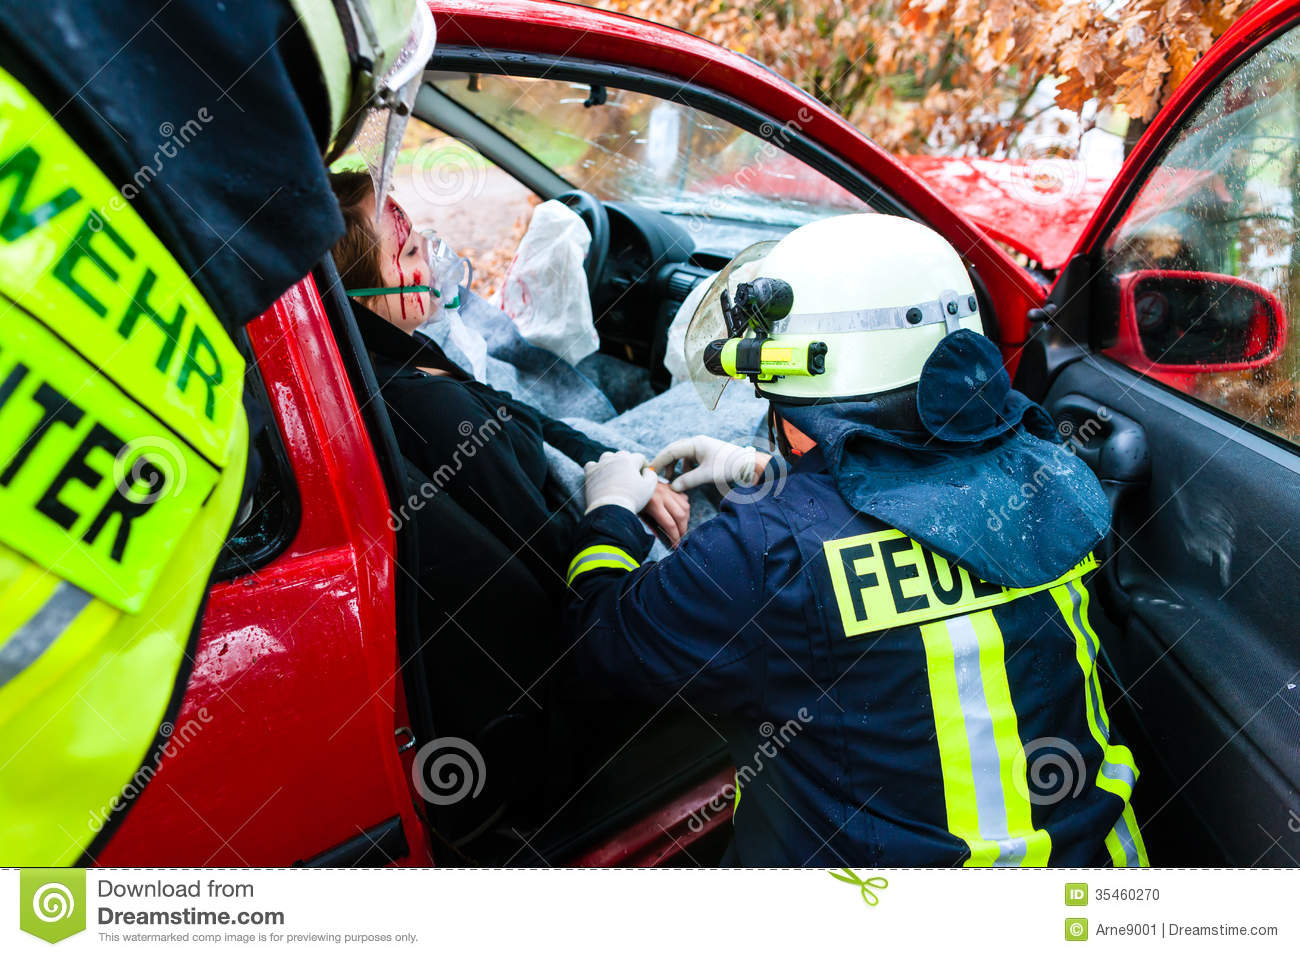 accident les sapeurs pompiers sauvent la victime d 39 un accident de voiture photo stock image. Black Bedroom Furniture Sets. Home Design Ideas